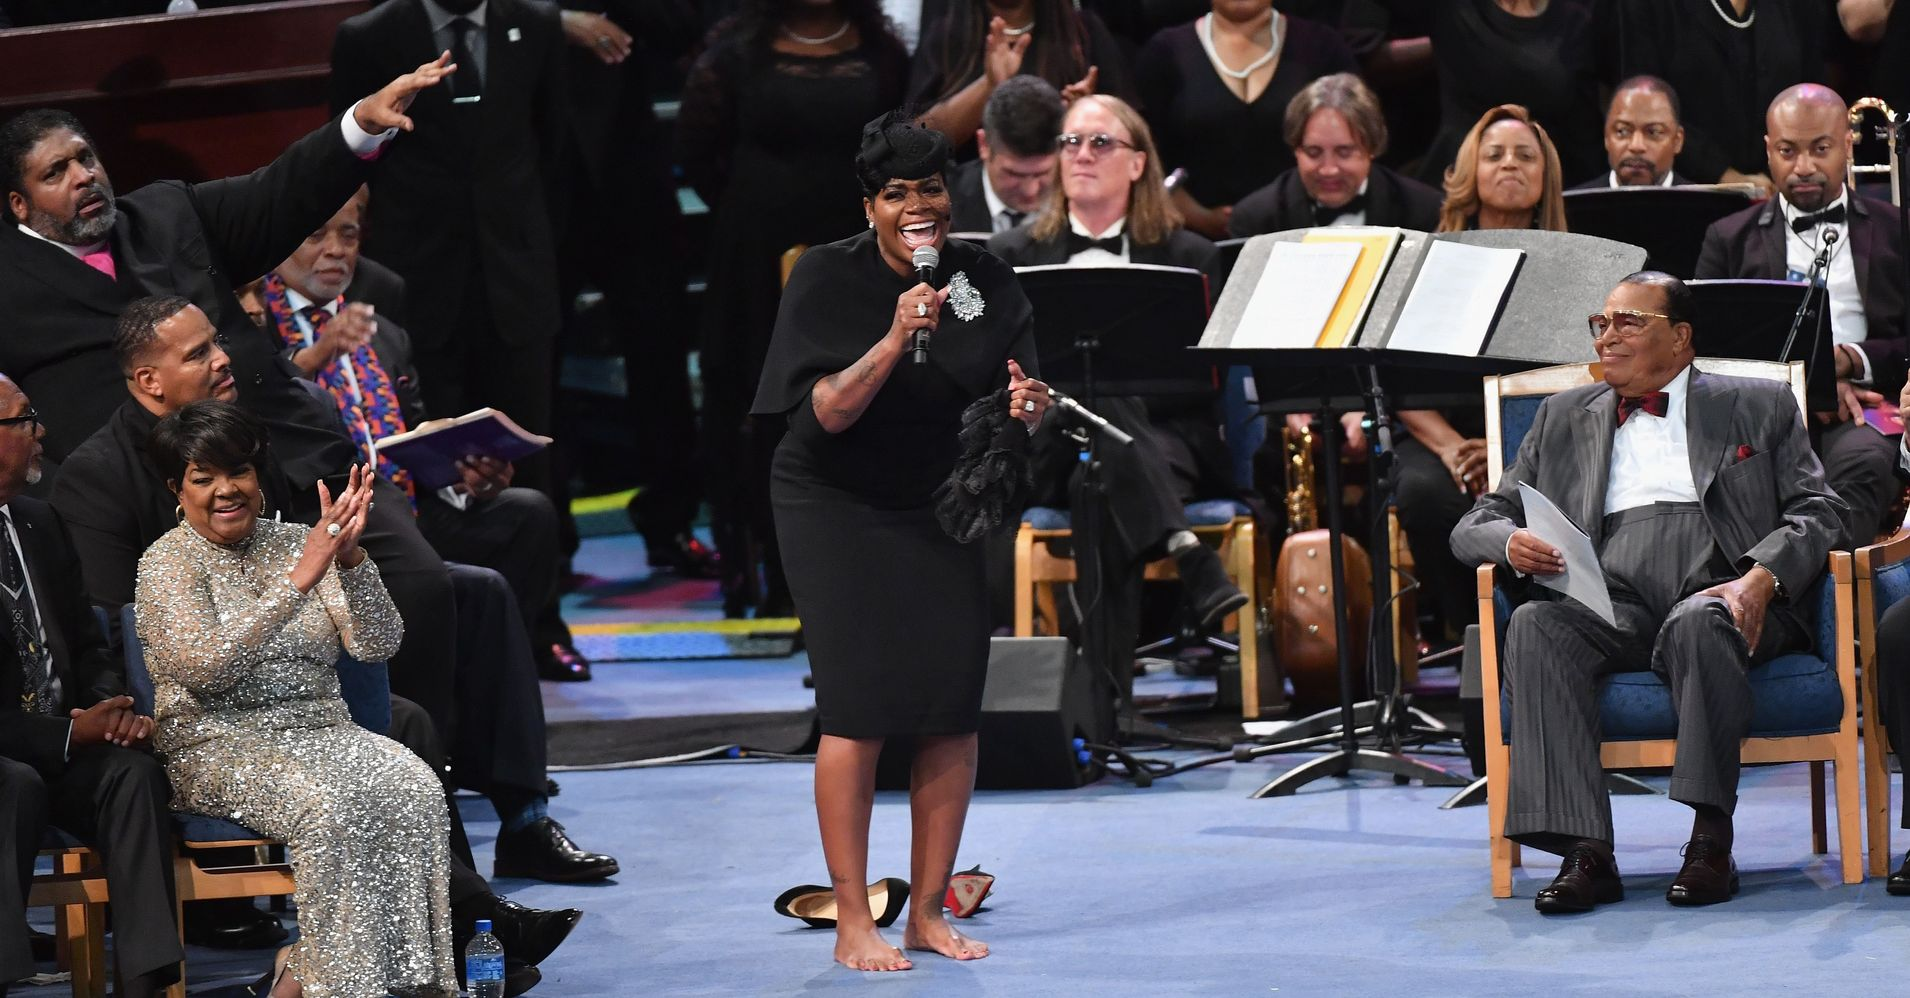 22b928f3644 A Barefoot Fantasia Barrino Sings Soulful Tribute At Aretha Franklin s  Funeral